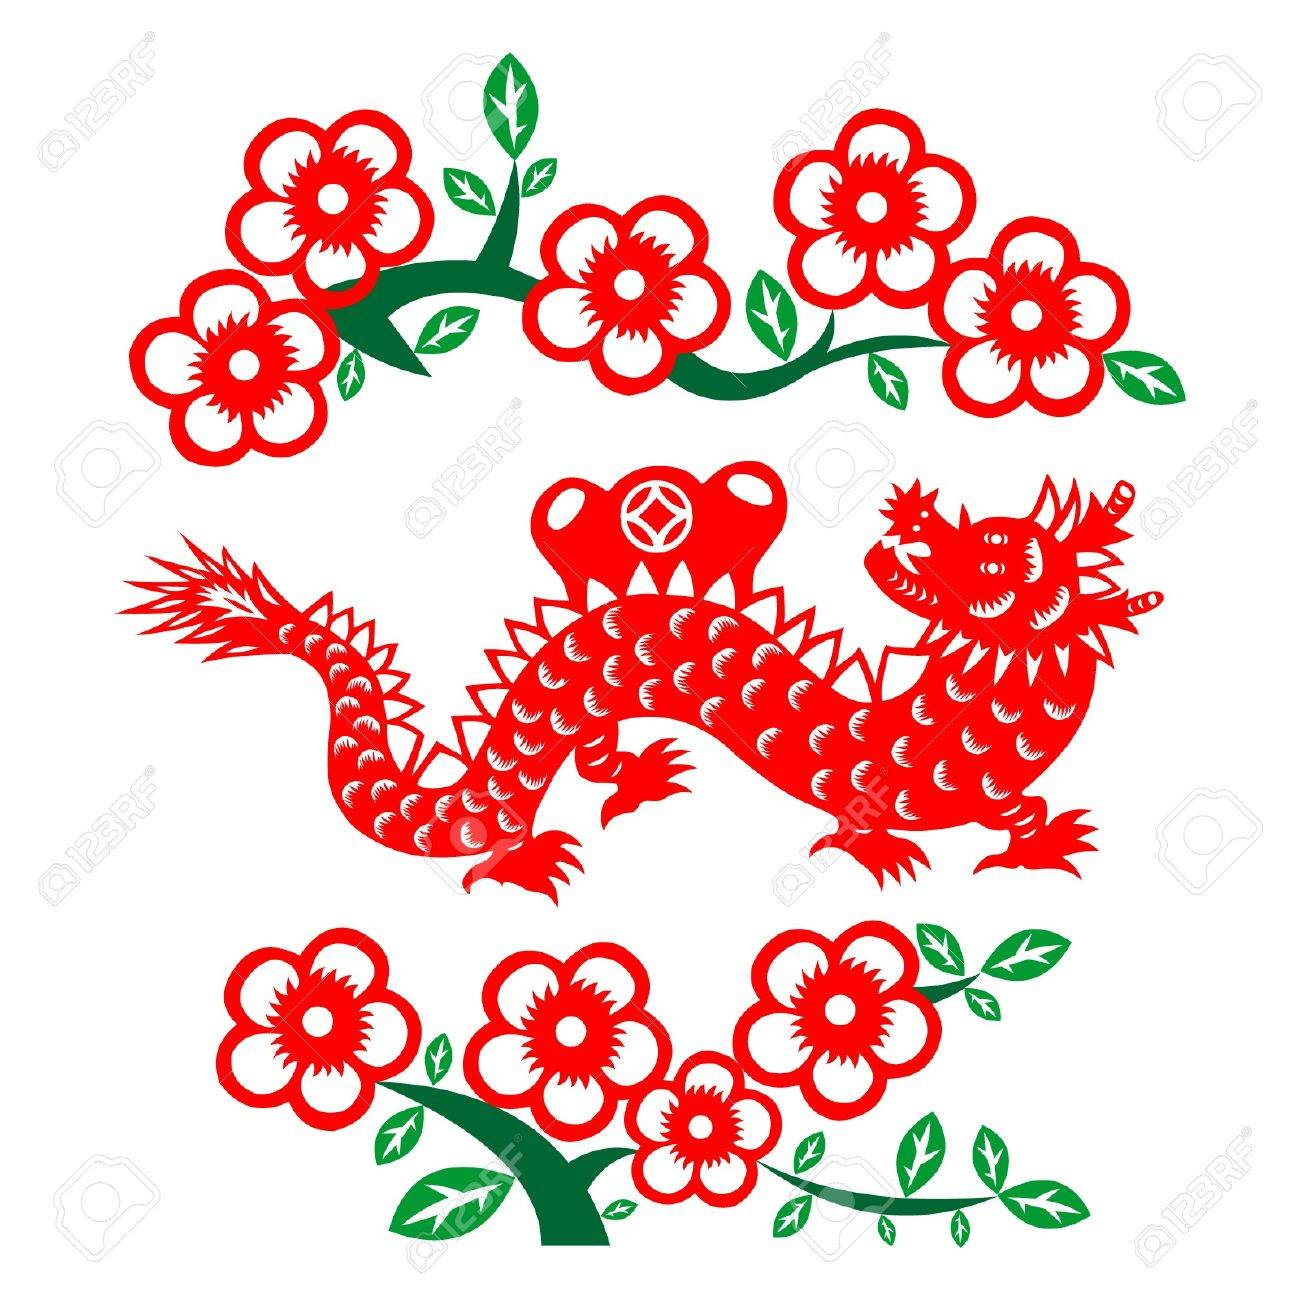 chinese new year dragon 2012 stock vector 11654955 - Chinese New Year 2012